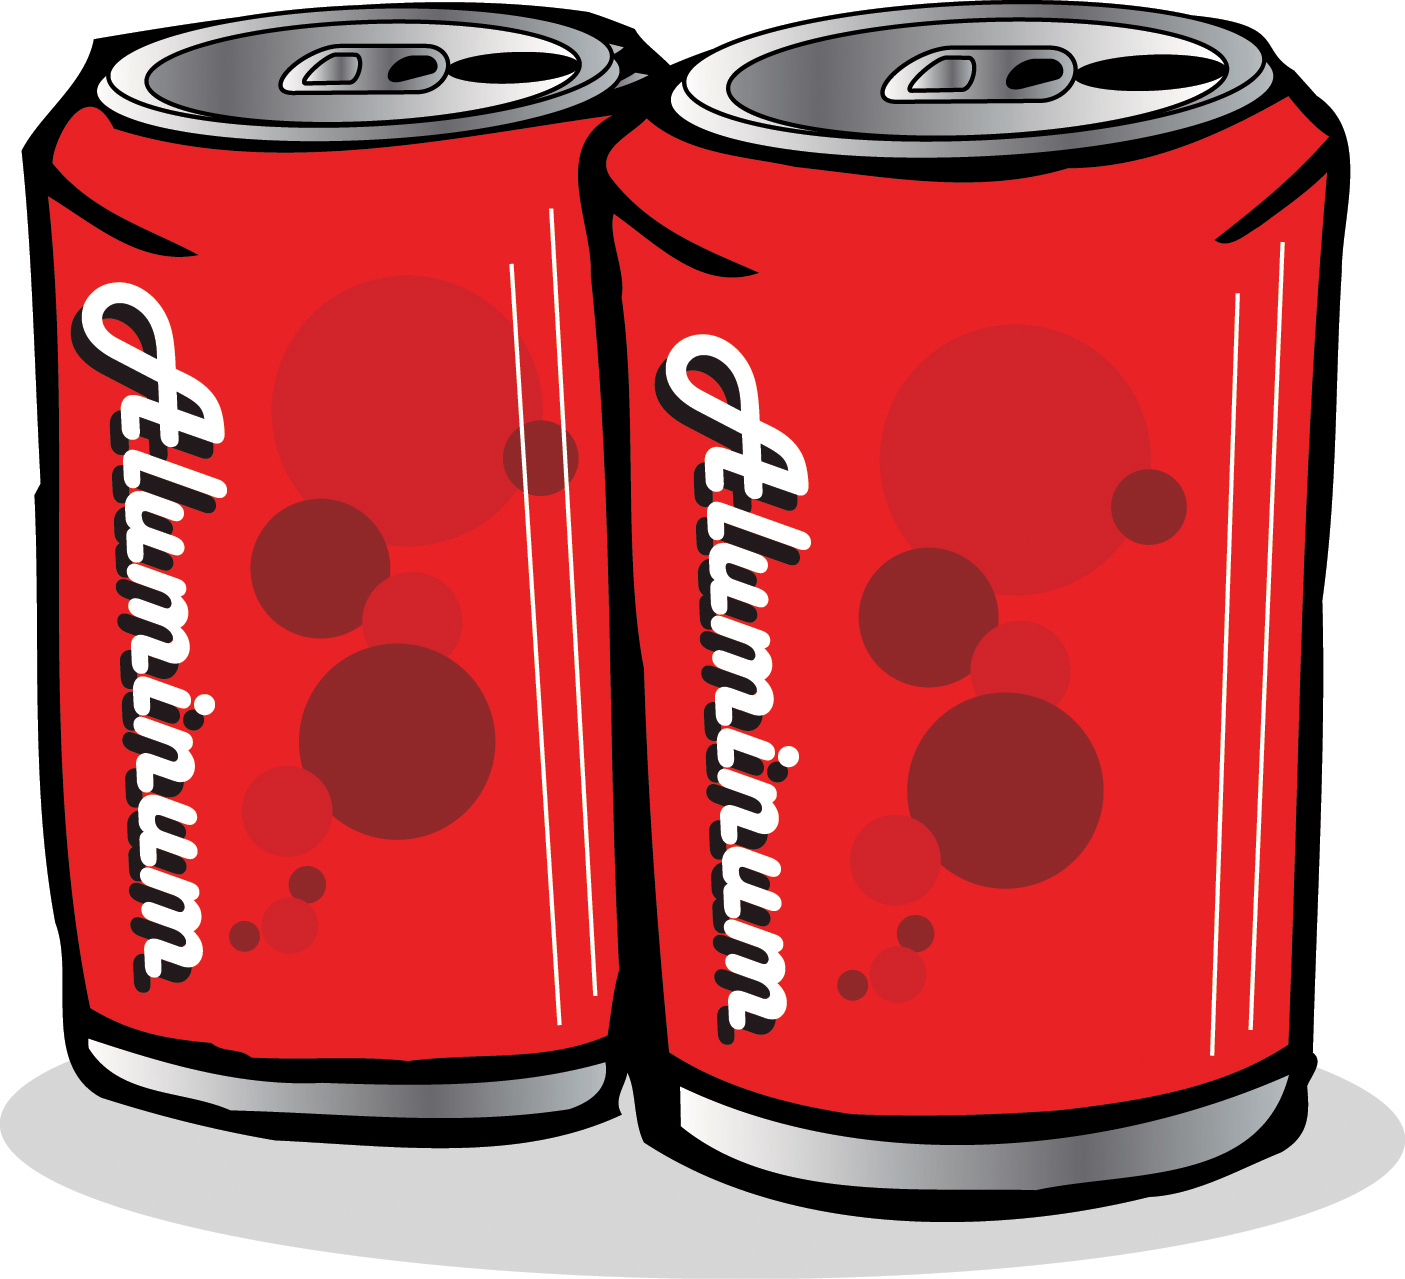 Beverage can clipart clipart freeuse download Free Aluminum Can Cliparts, Download Free Clip Art, Free Clip Art on ... clipart freeuse download